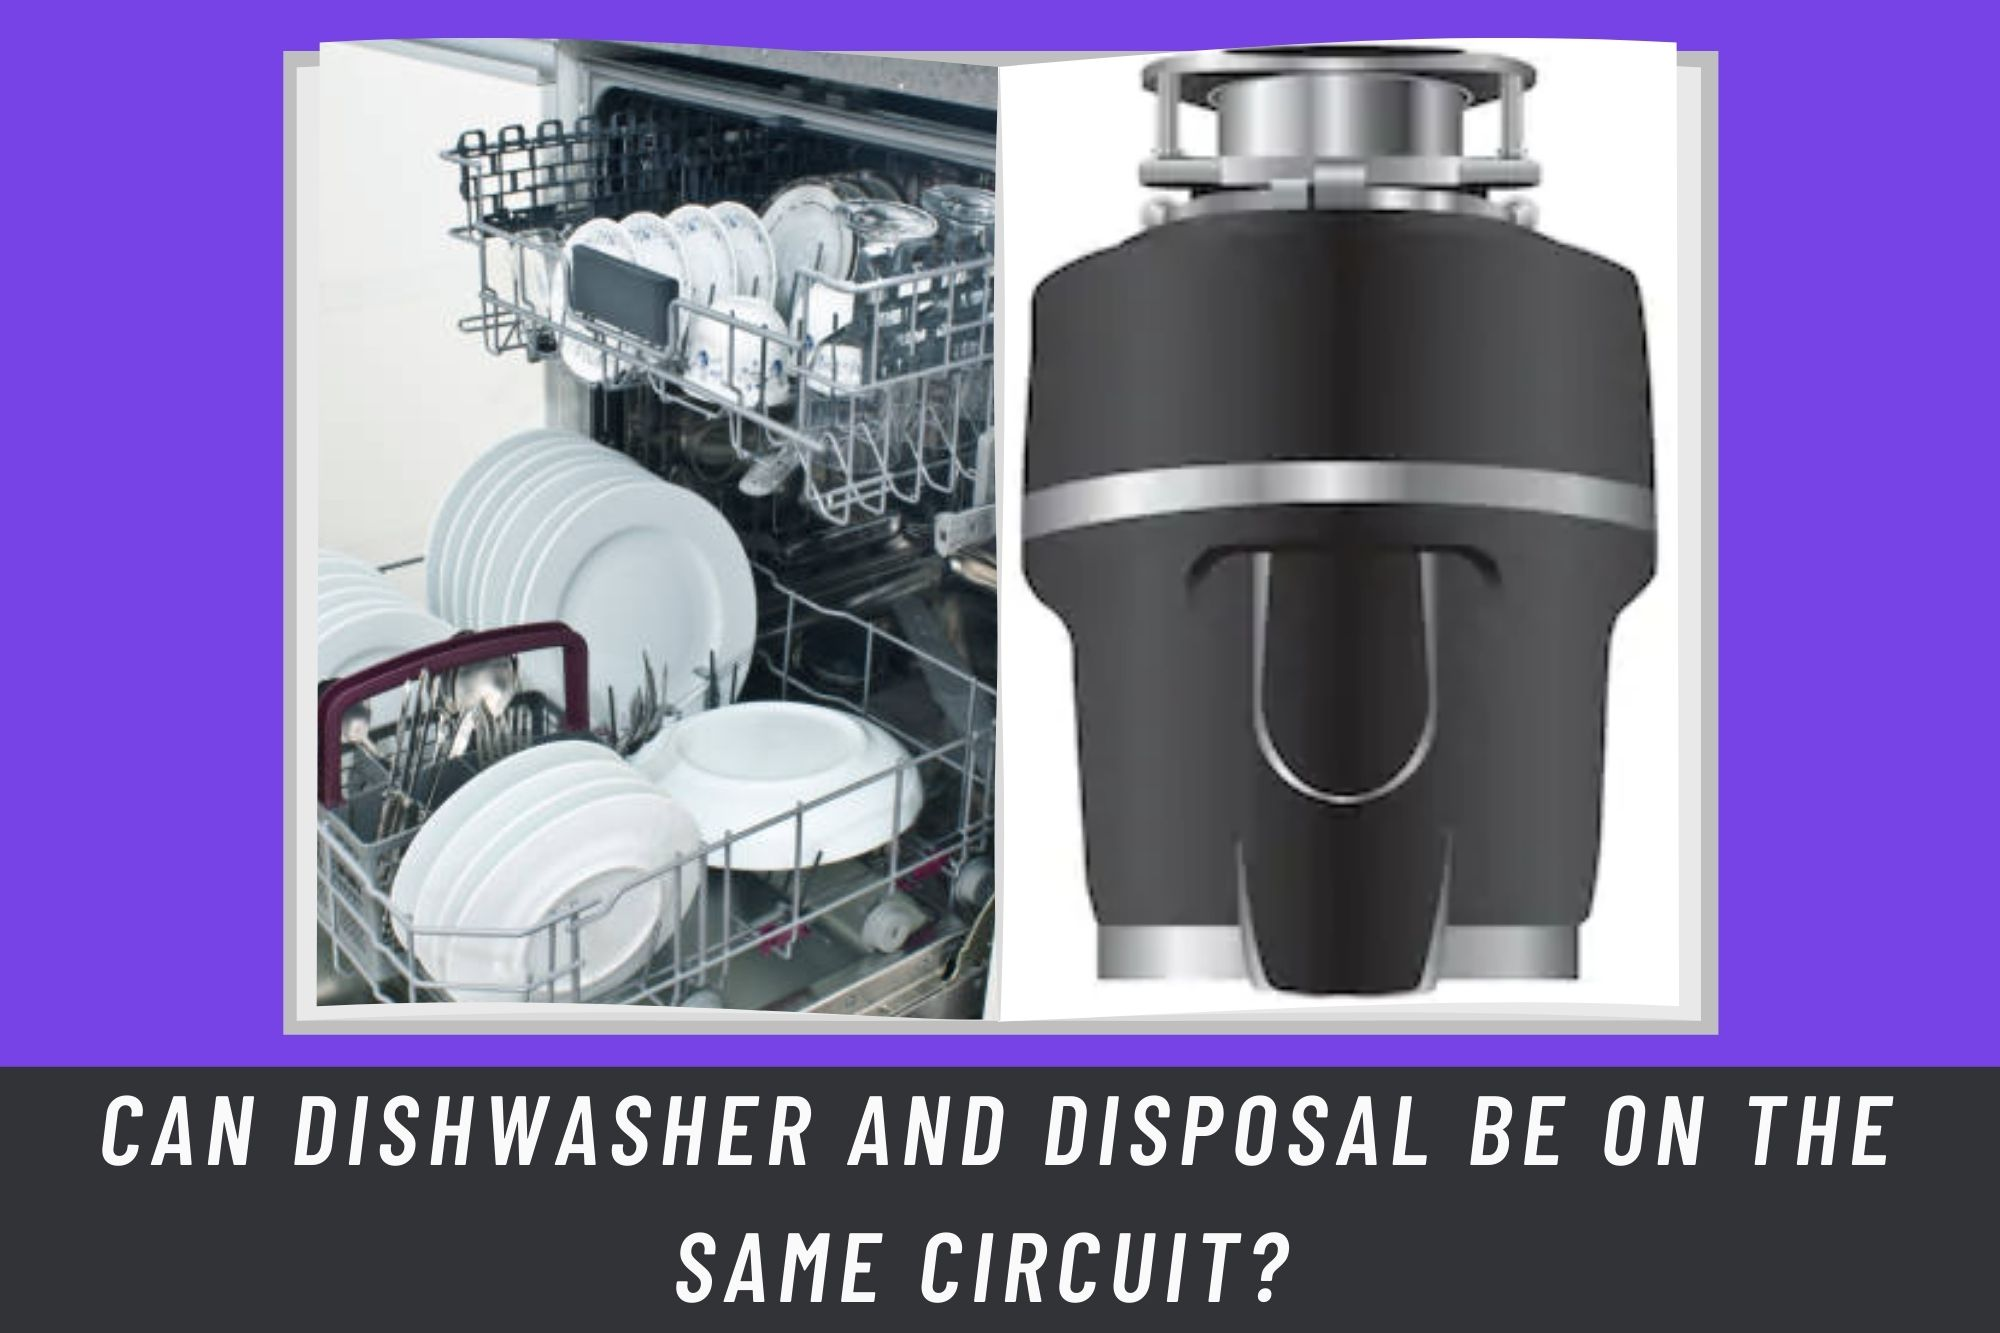 Can Dishwasher And Disposal Work Be On the Same Circuit? Can Dishwasher And Disposal Work Be On Same Circuit? What Dishwasher And Disposal Is? And How Do They Work? And What Is Their Purpose Of Use? Are Dishwashers And Disposals Are Connected? Is It Necessary? What Is GFCI And AFCI? Are They Important In Disposal And Dishwasher Properly Functioning? Should Your Kitchen Have The Same Circuit Setting As In Your Home? Is There Any Need For Special Kinds Of Circuits In The Kitchen? What Is The Role Of GFCI And AFCI In The Working Of Dishwasher And Disposal? What Kind Of Breakers And Circuits Are Good For Dishwasher And Disposal? Is There Any Need For A Stabilizer?